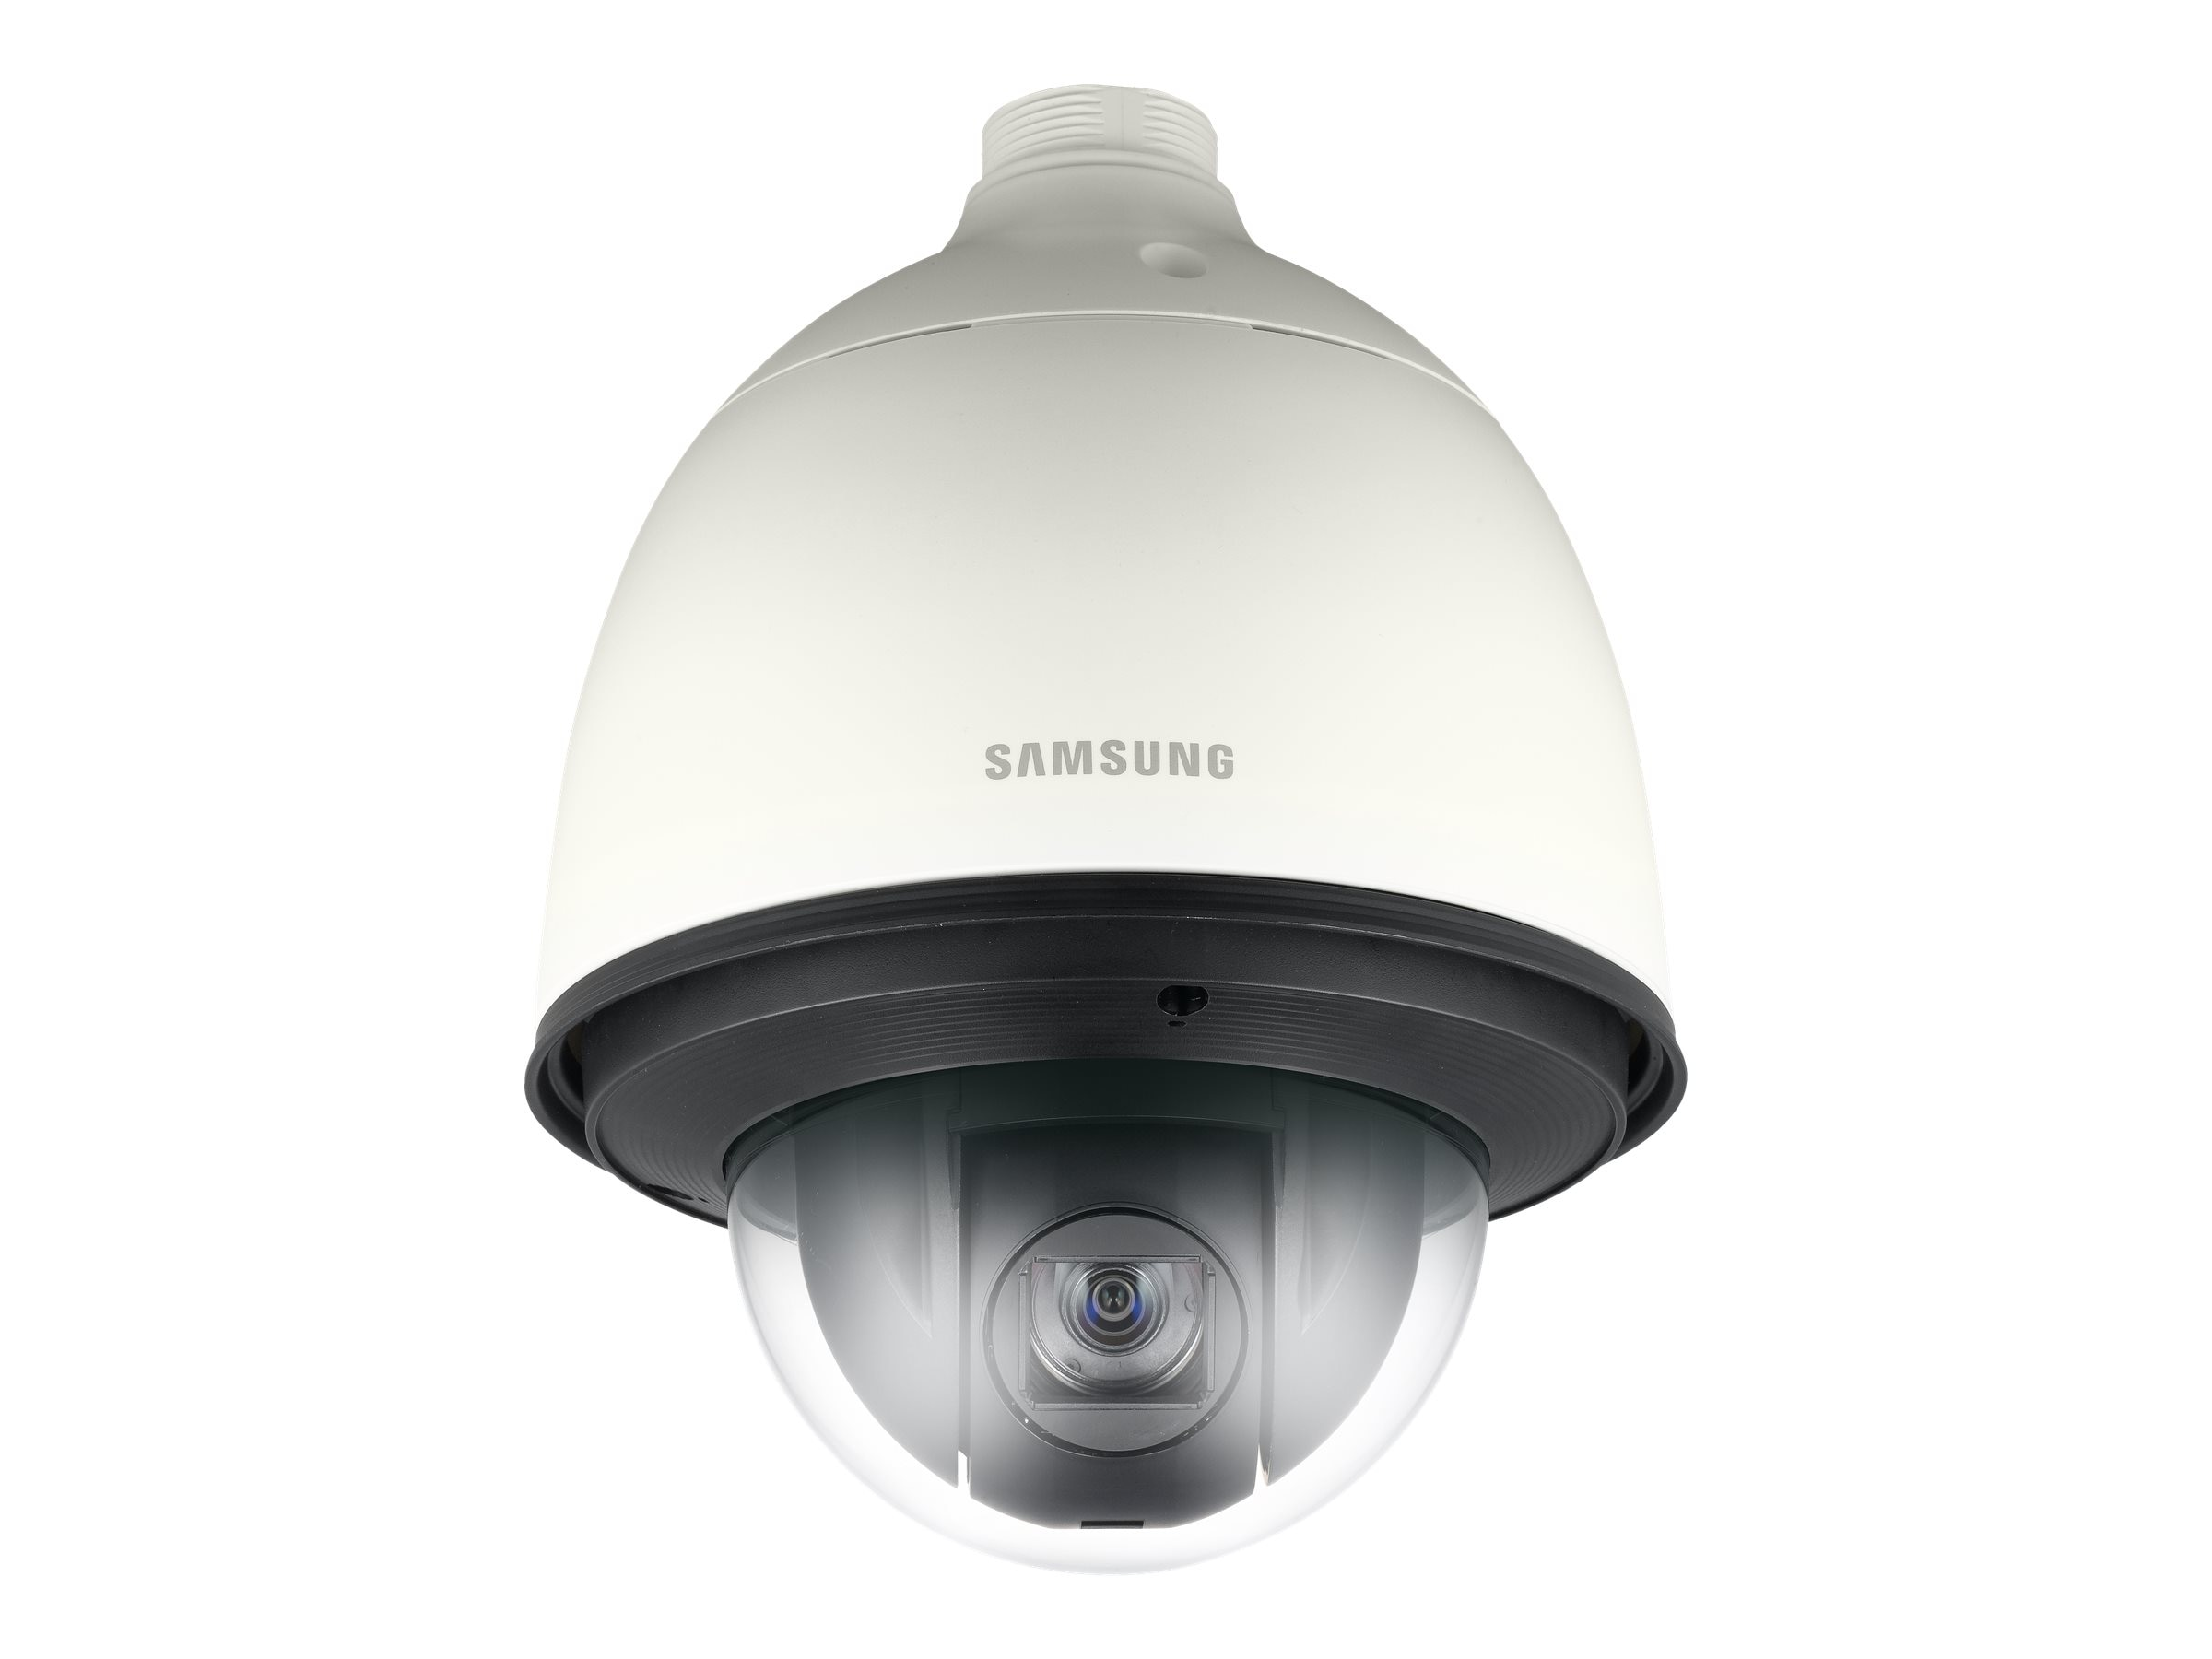 Samsung 2MP HD 23x Network PTZ Dome Camera